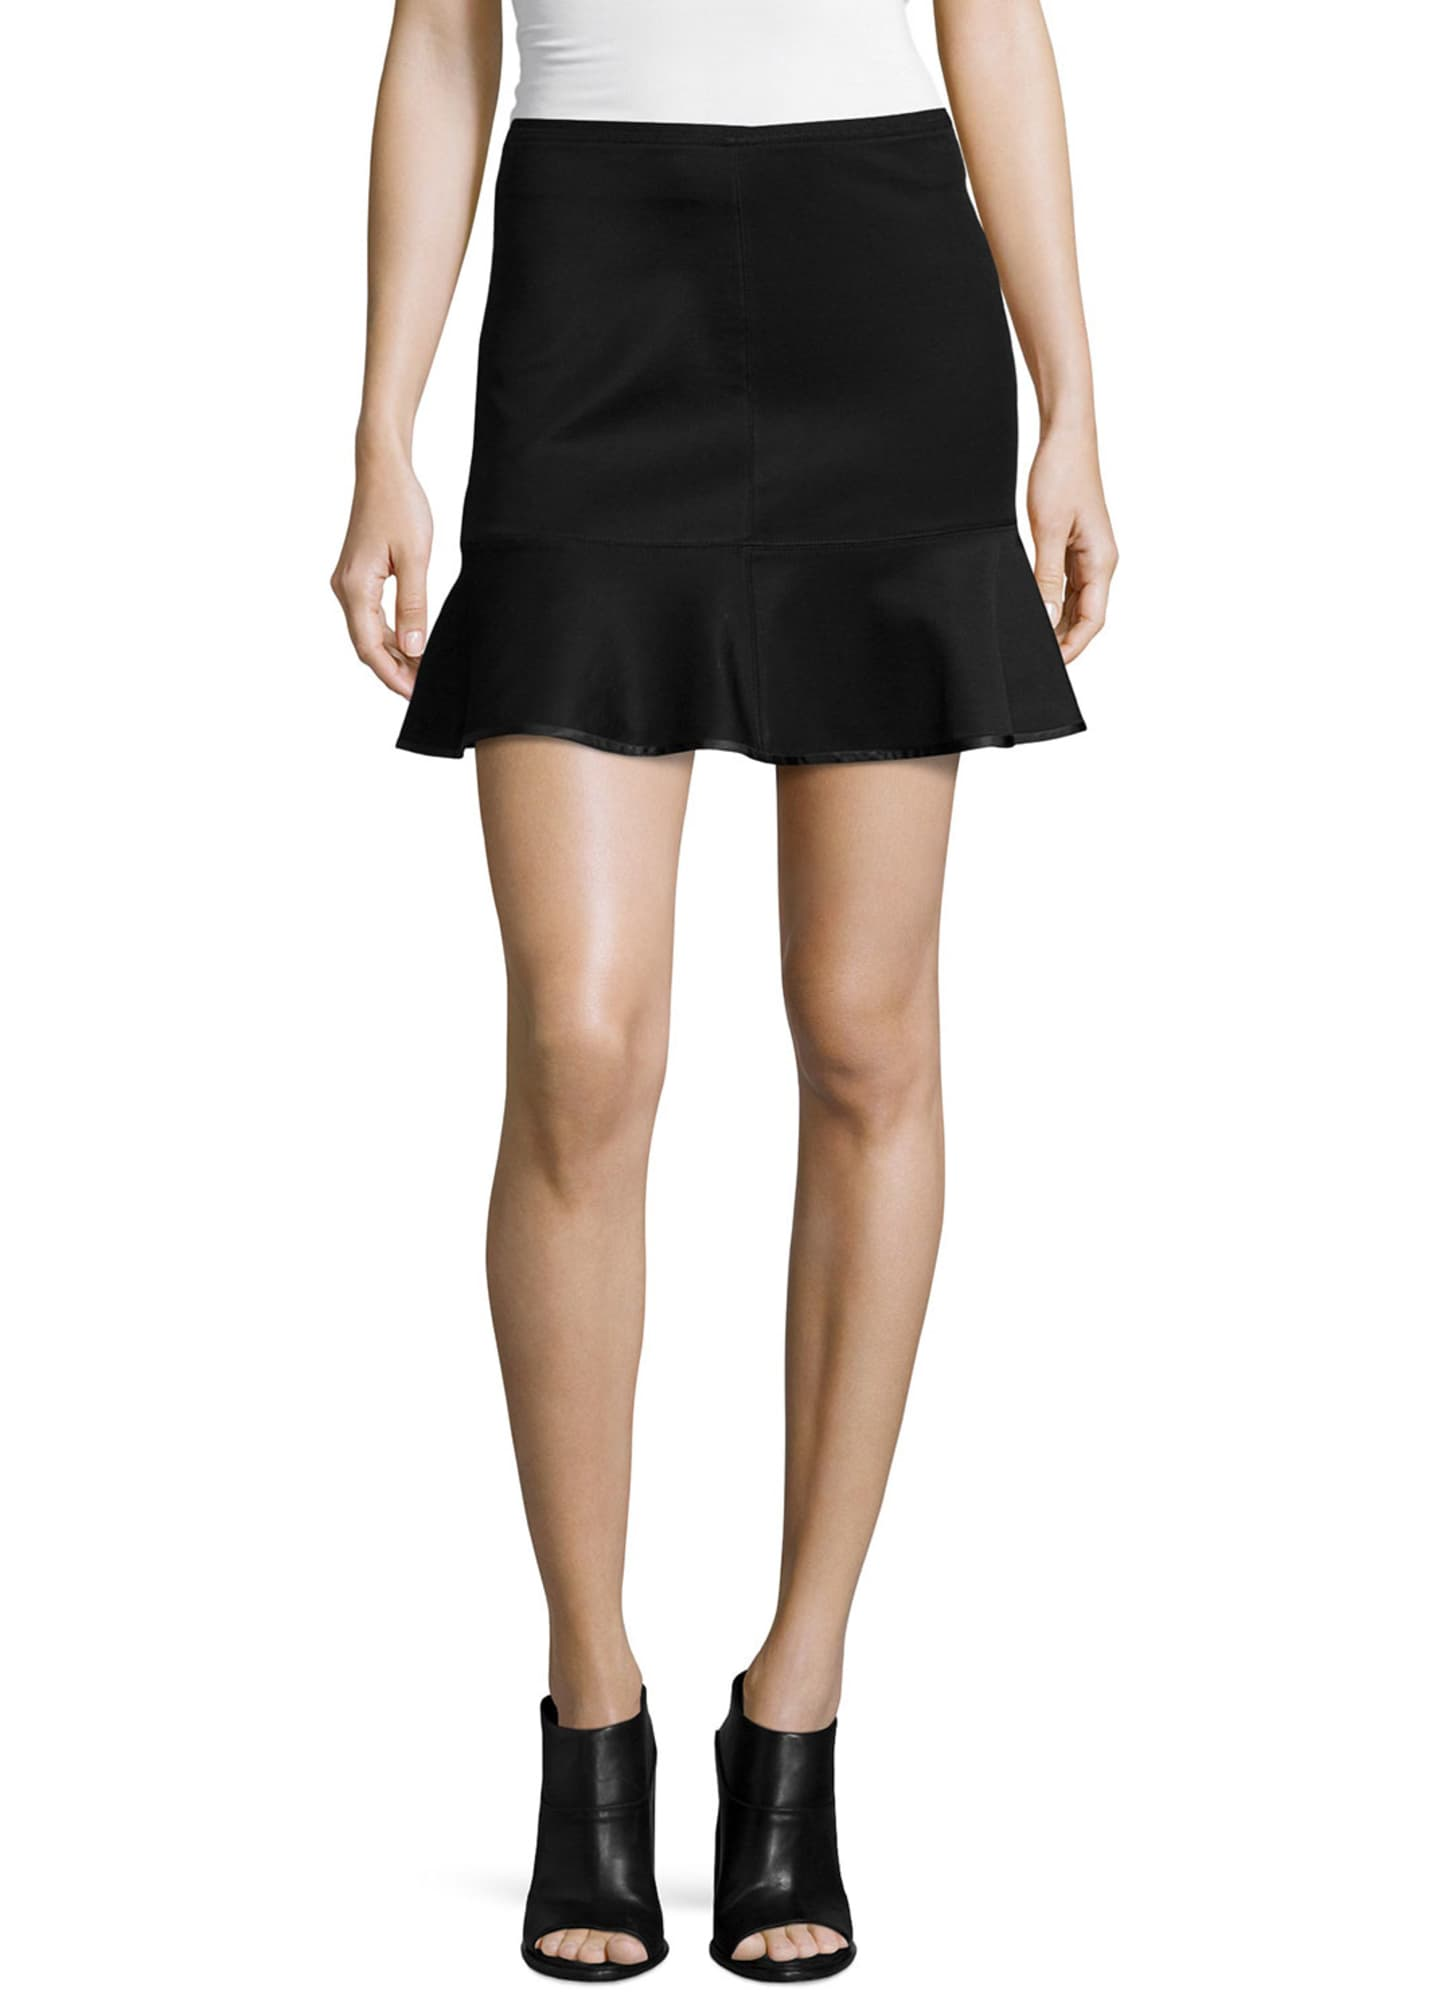 Rag & Bone Brianna Ruffle-Hem Mini Skirt, Black